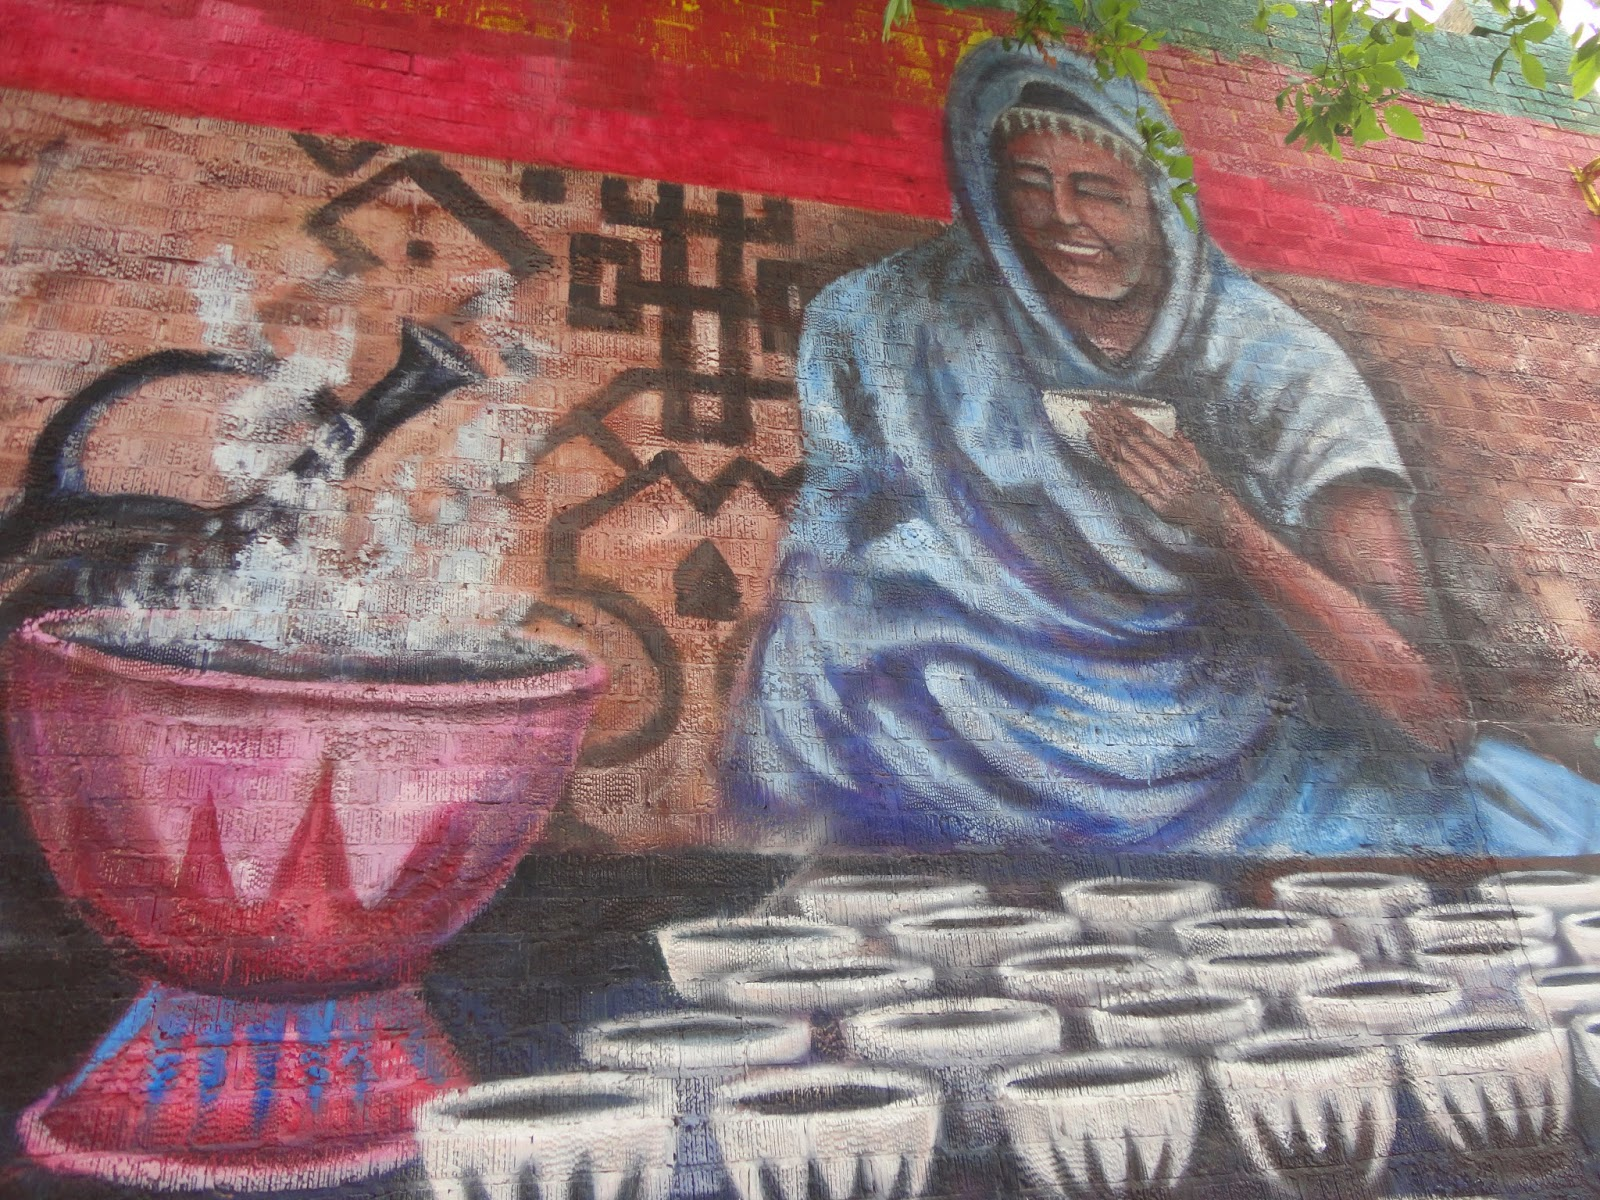 Ethiopian Coffee Ceremony by Tom Andrich (2003) - Shawarma Time Restaurant and Deli at 616 Ellice Avenue